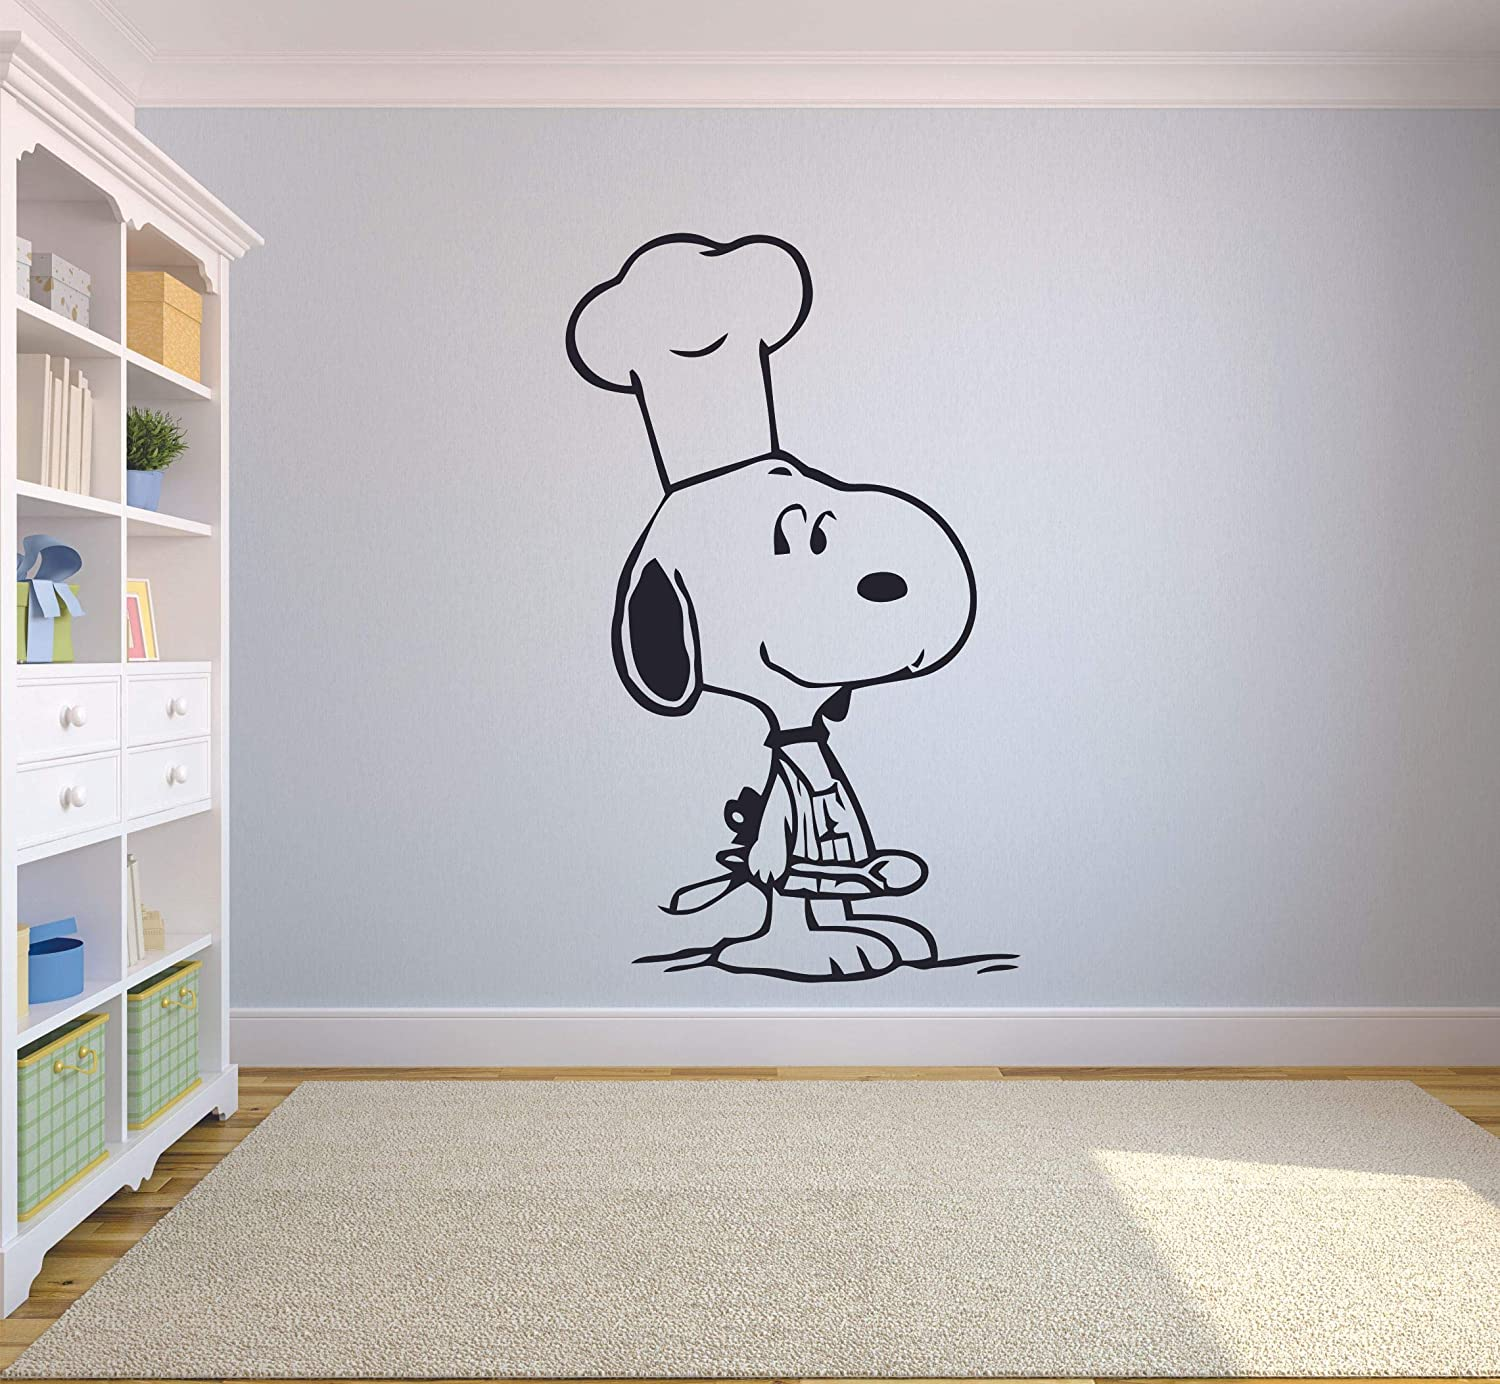 Snoopy Wall Decals for Kids Bedroom / Snoopy Dog Boys Room Decor / Vinyl Art Stickers Decal Childrens Rooms / The Peanuts Movie Cartoon Character Fun Look Dogs Snoopy Chef Cooking - Size (20x12 inch)